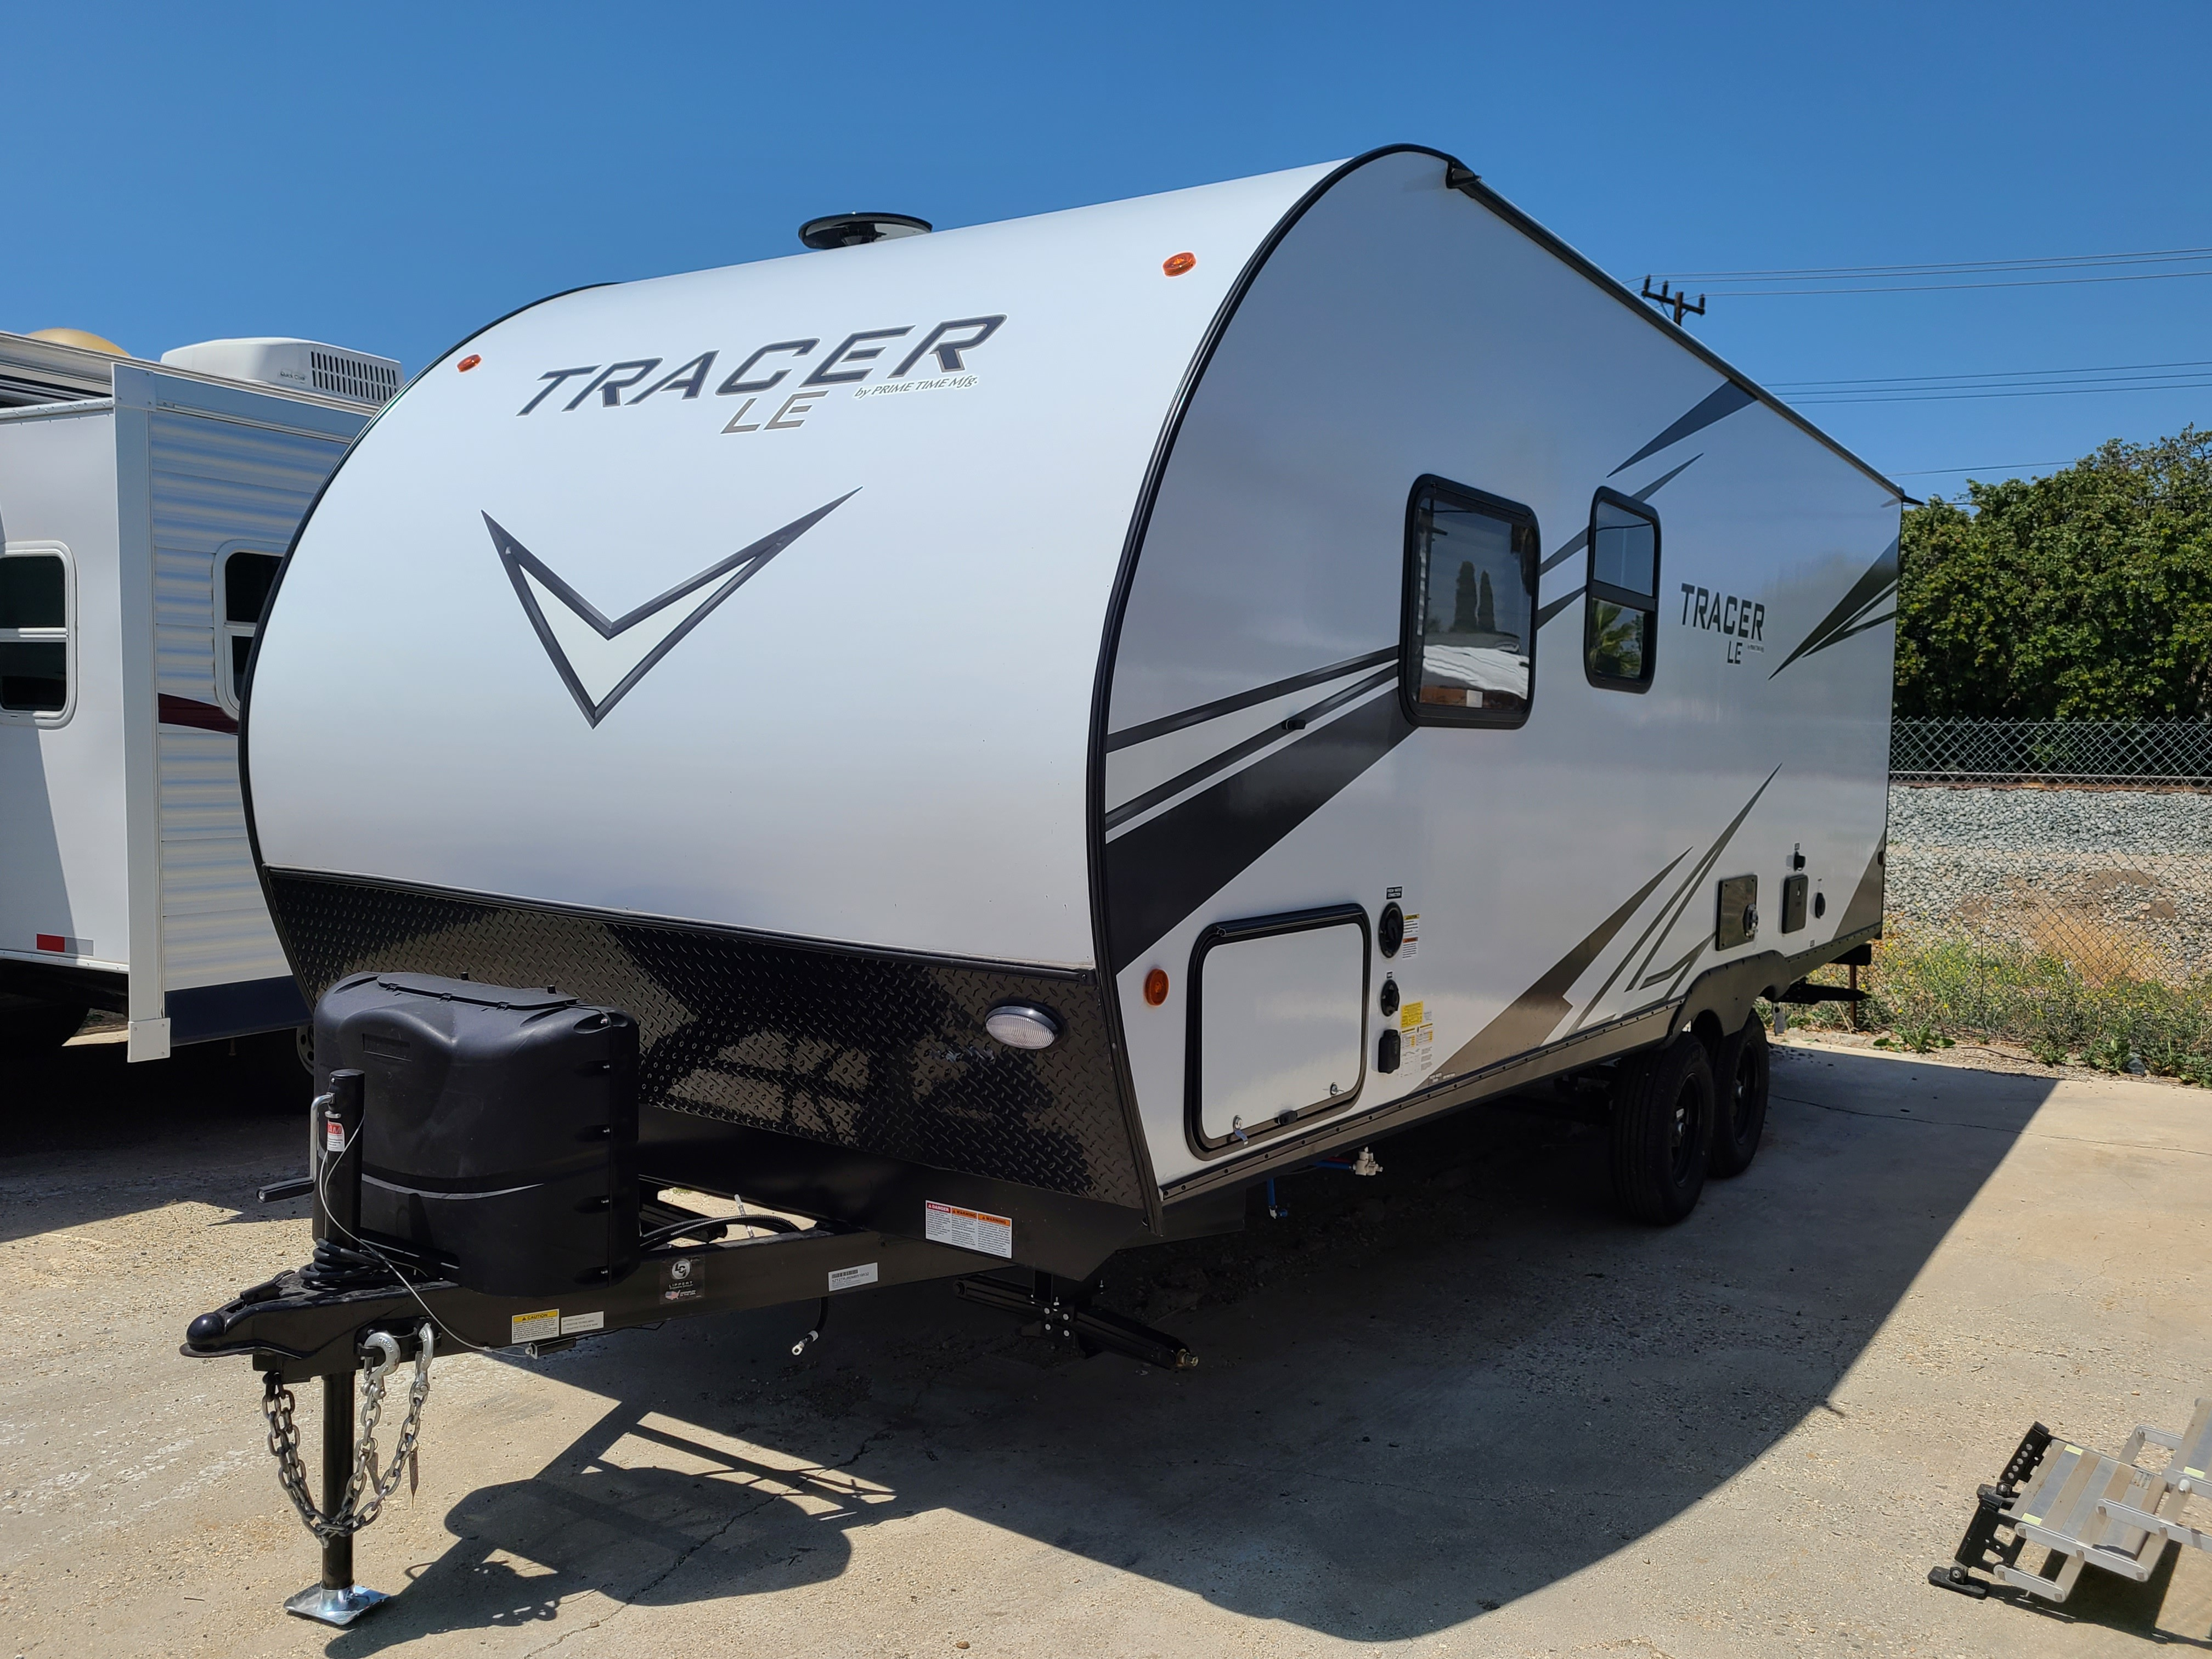 New, 2021, Tracer, 200BHLE, Travel Trailers